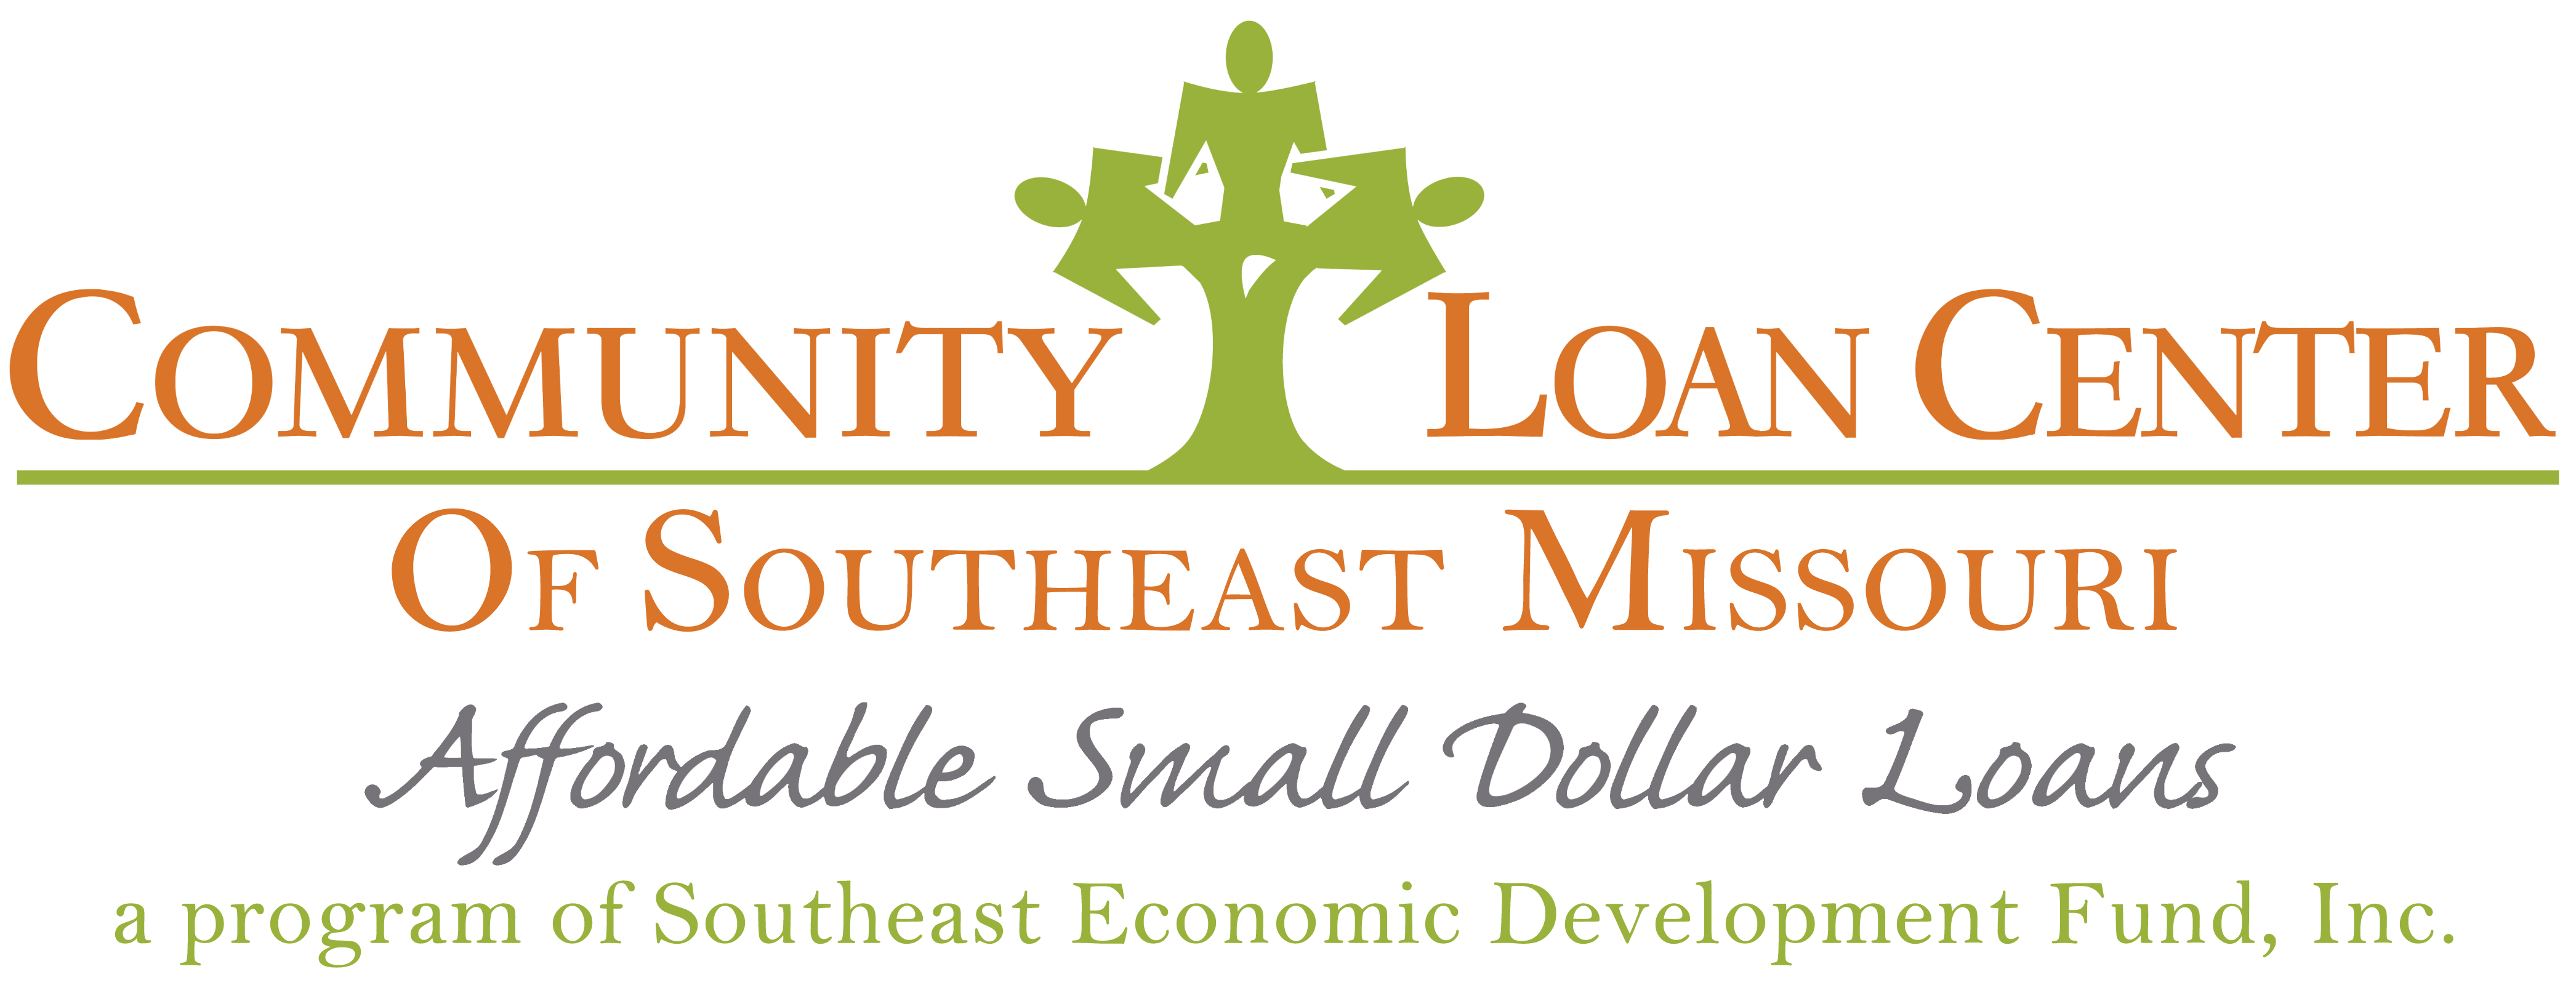 Community Loan Center of Southeast Missouri